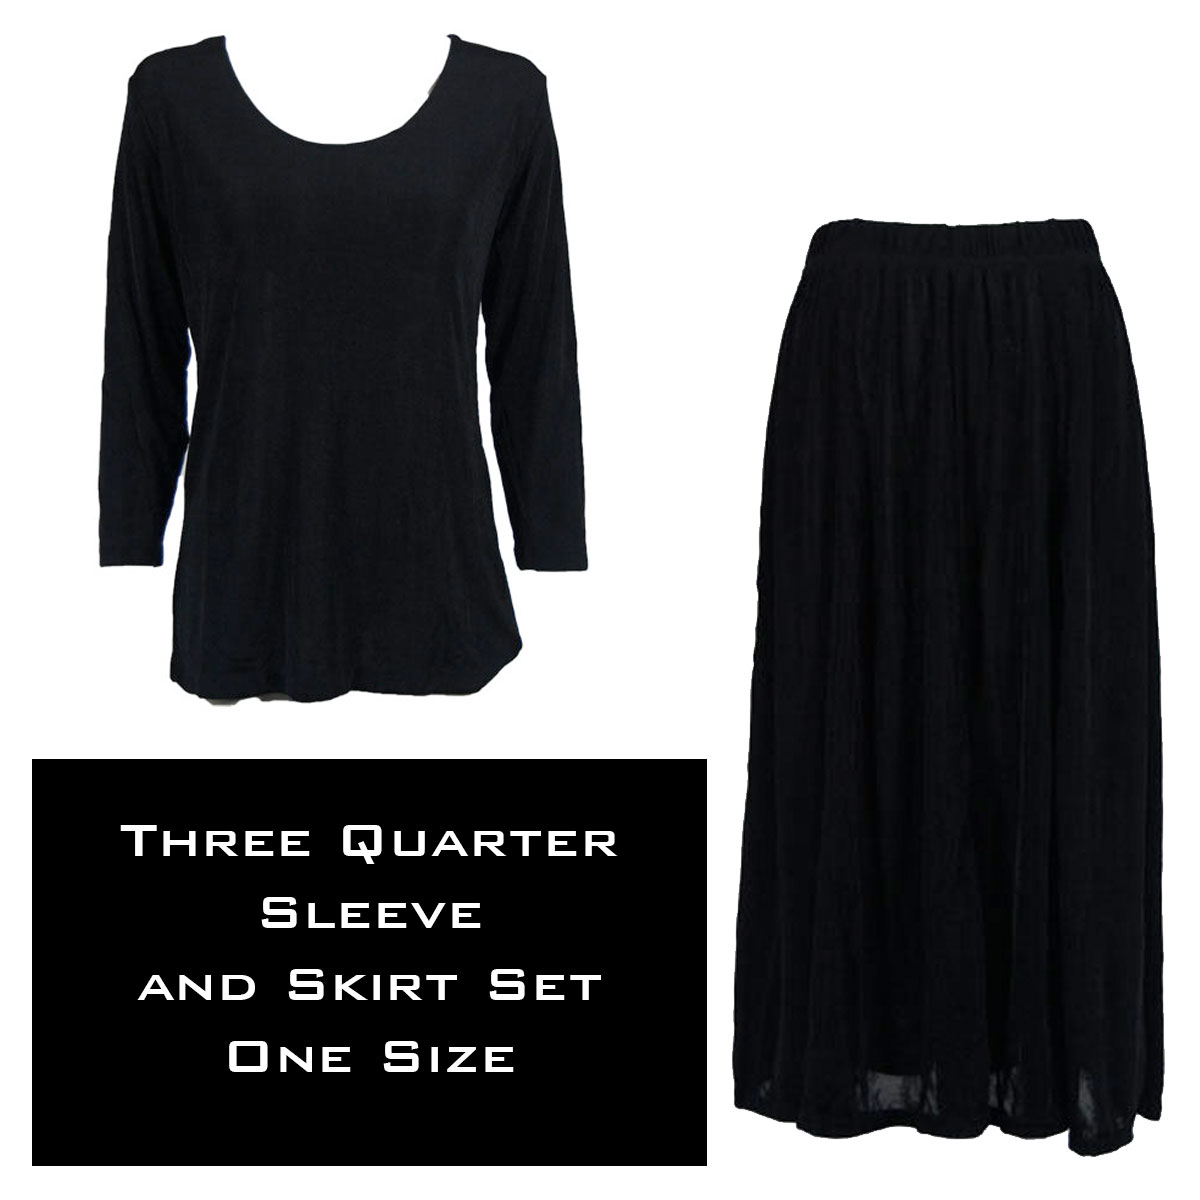 Slinky Skirt and Top Sets SST 3430